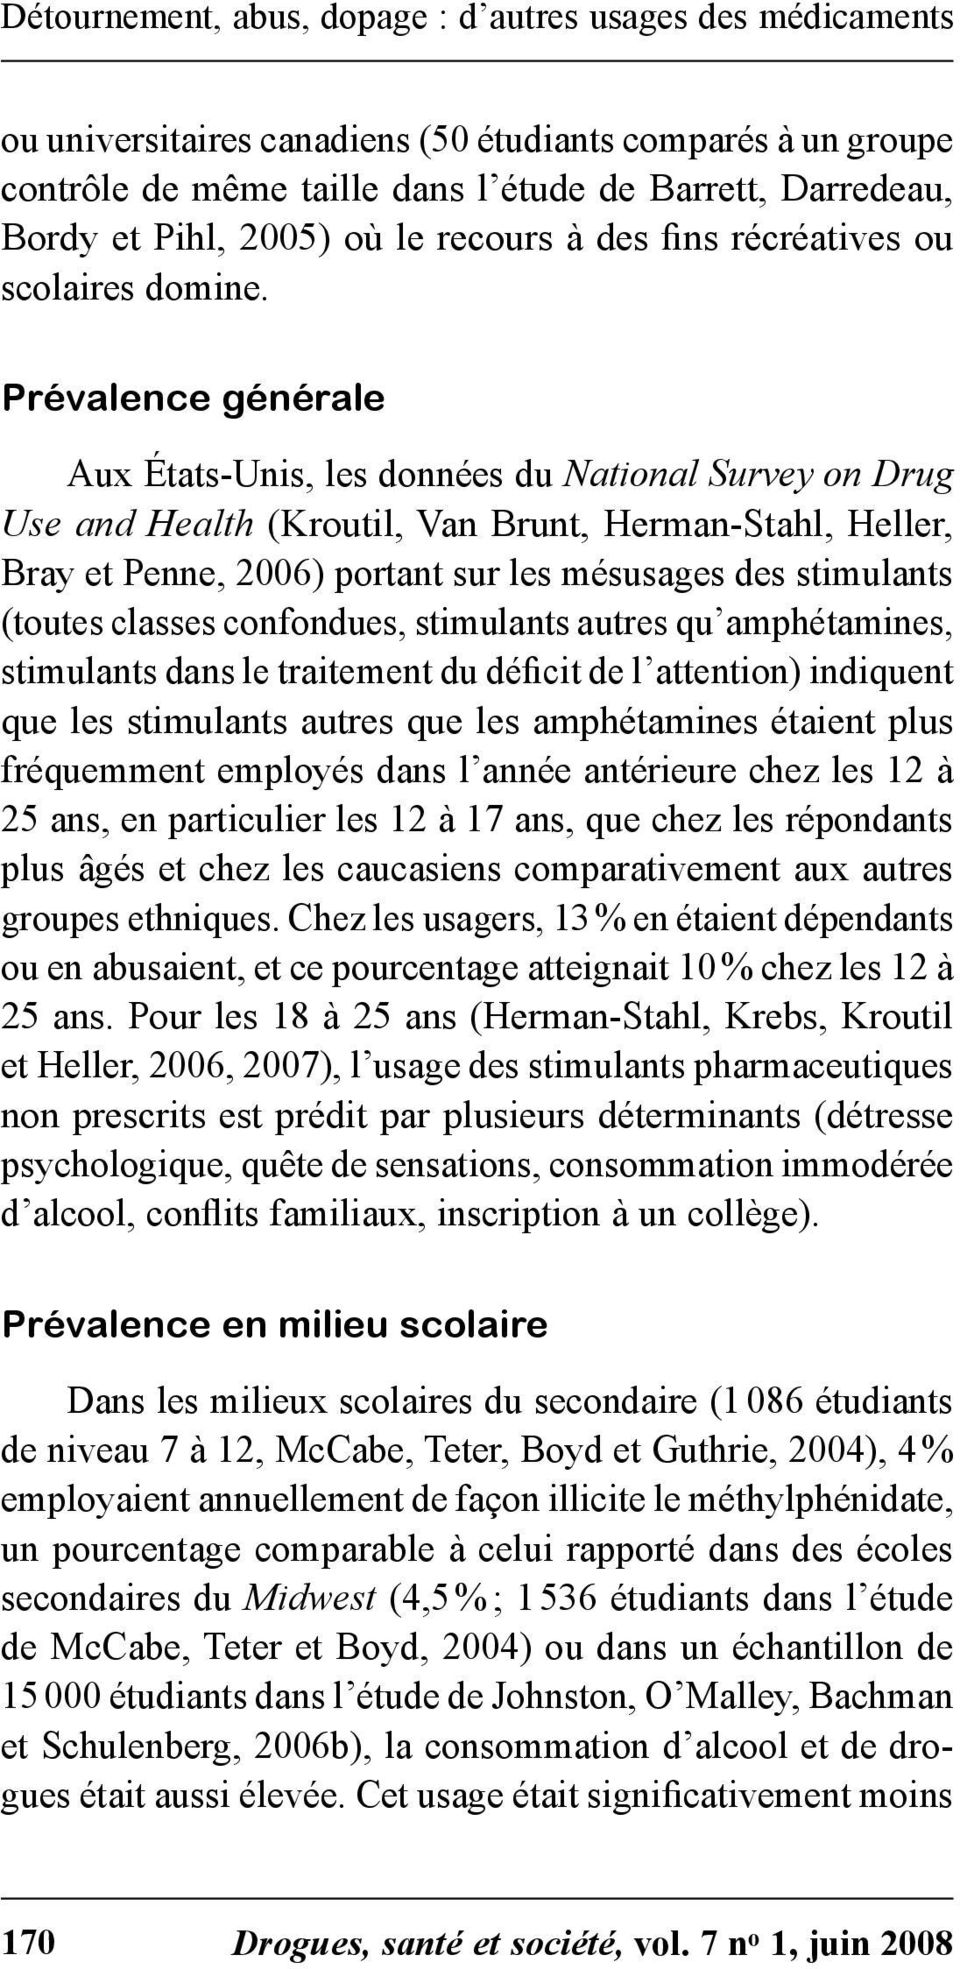 Prévalence générale Aux États-Unis, les données du National Survey on Drug Use and Health (Kroutil, Van Brunt, Herman-Stahl, Heller, Bray et Penne, 2006) portant sur les mésusages des stimulants